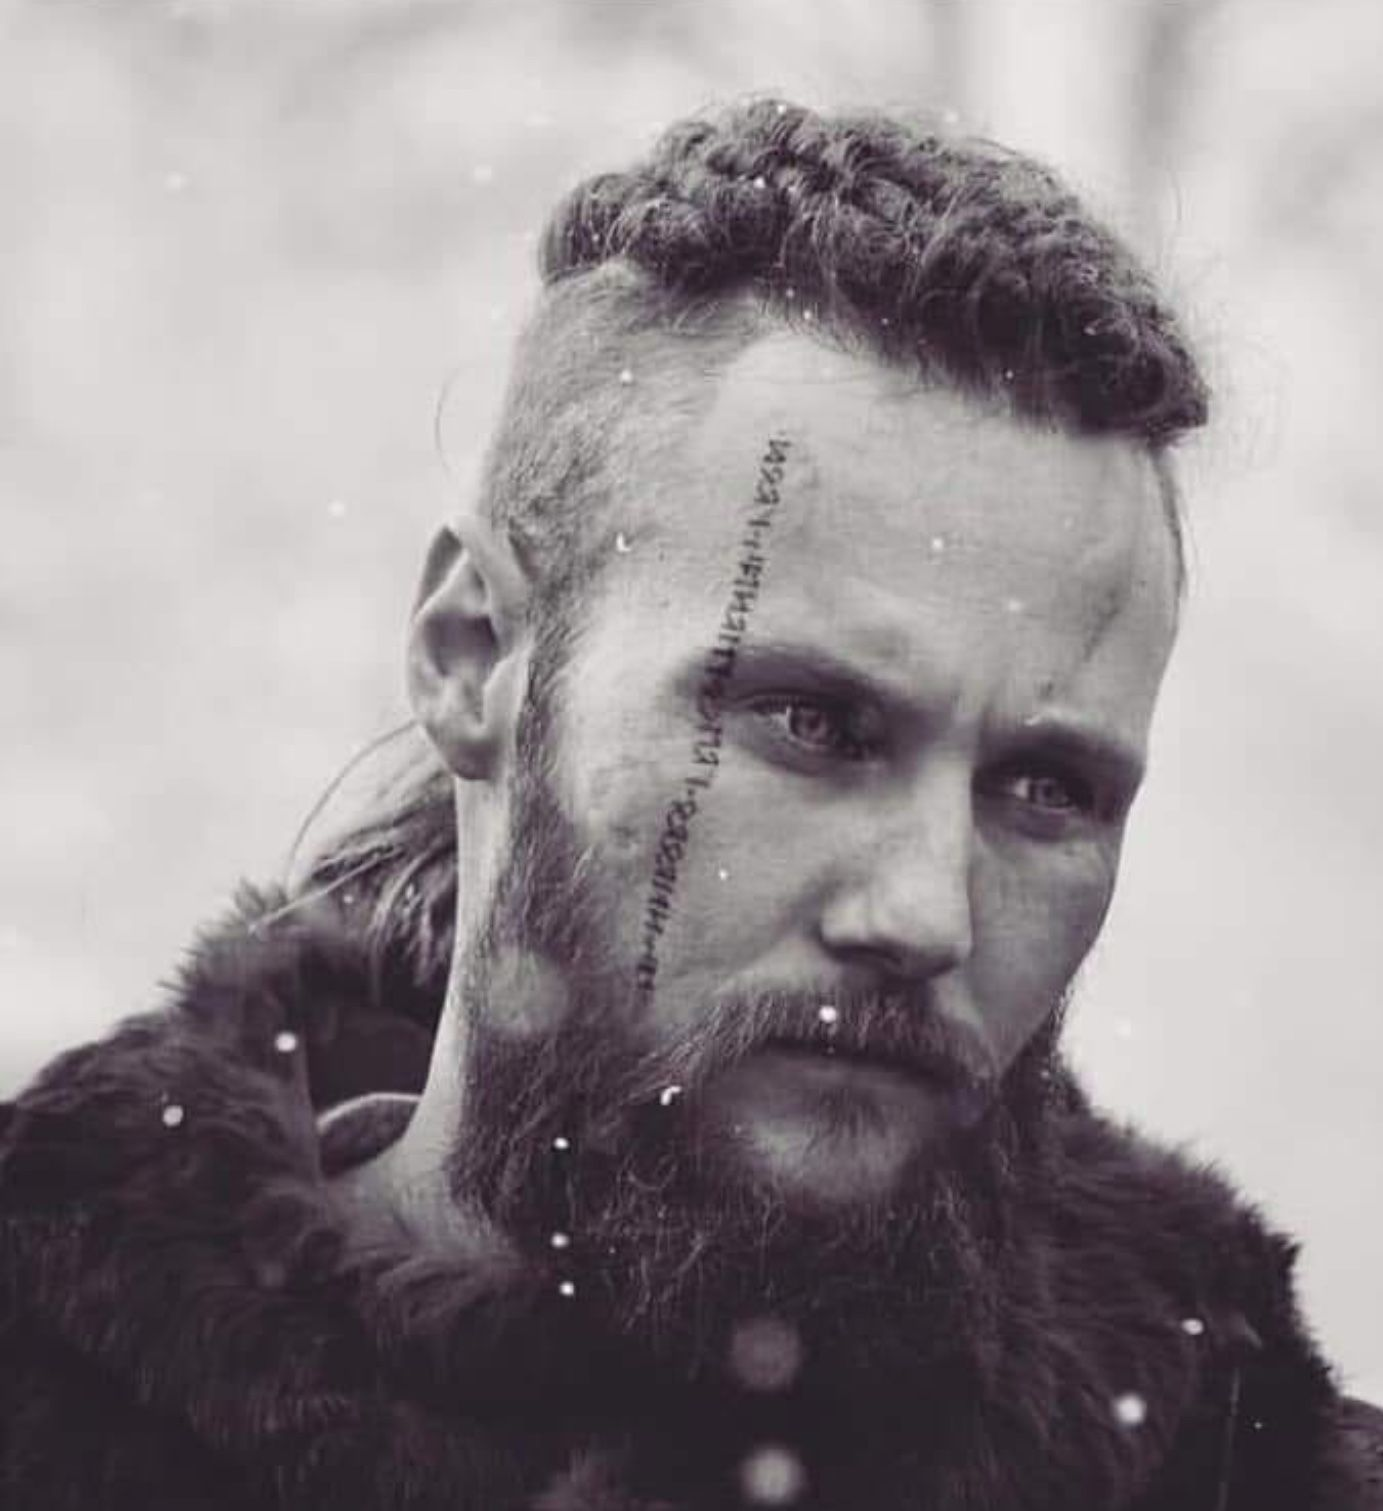 Pin By Judythe Burkinshaw On The Vikings History Channel With